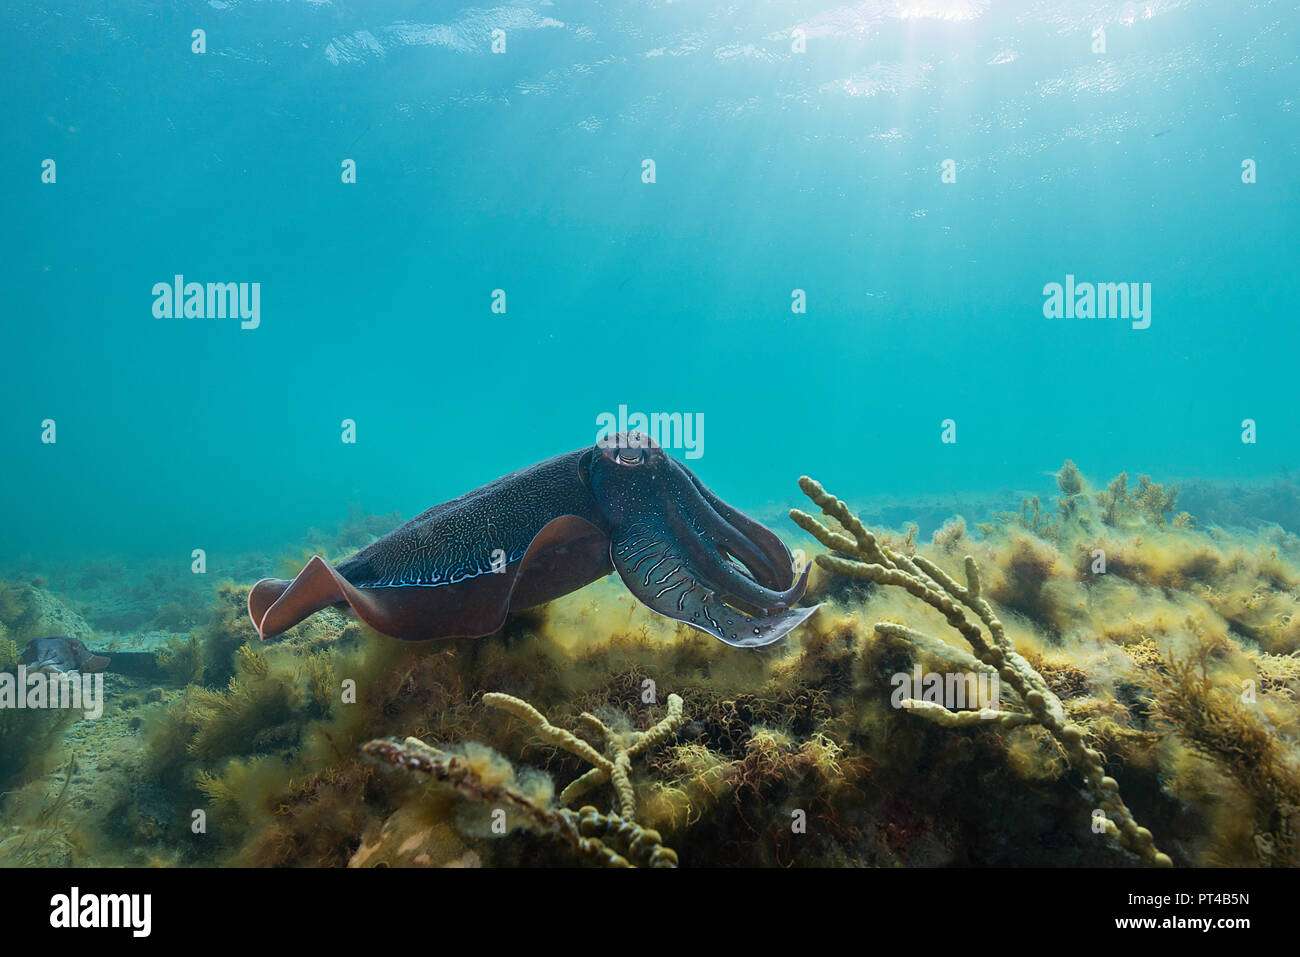 Australian giant cuttlefish during the annual mating and migration season. - Stock Image